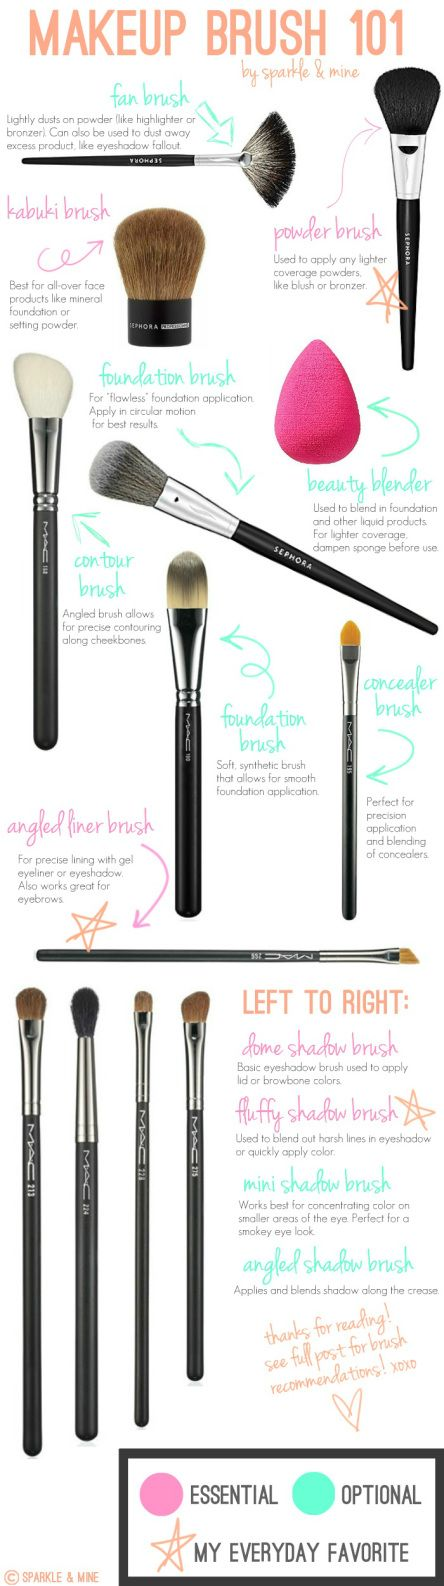 Make-up brushes 101. Learn about different brushes, tools for make-up.